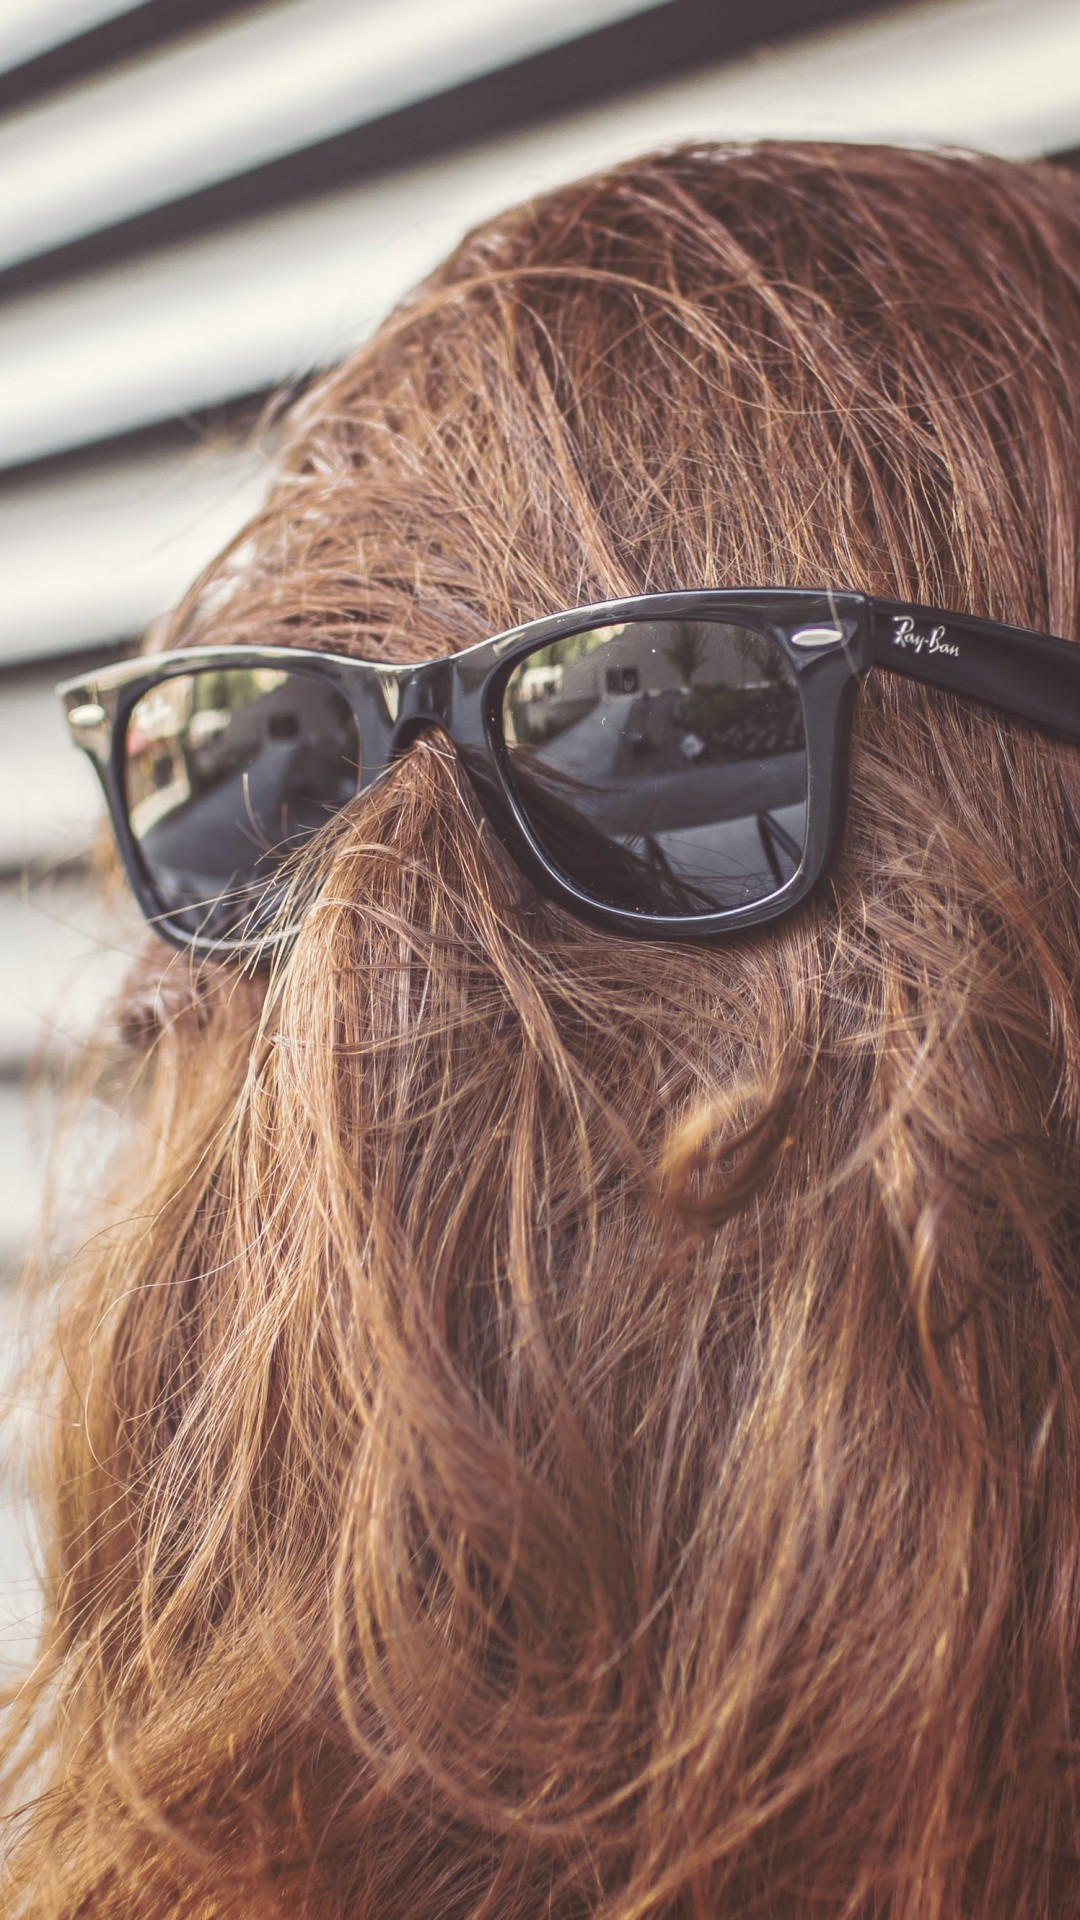 Chewbacca Girl Wallpaper for SAMSUNG Galaxy S5